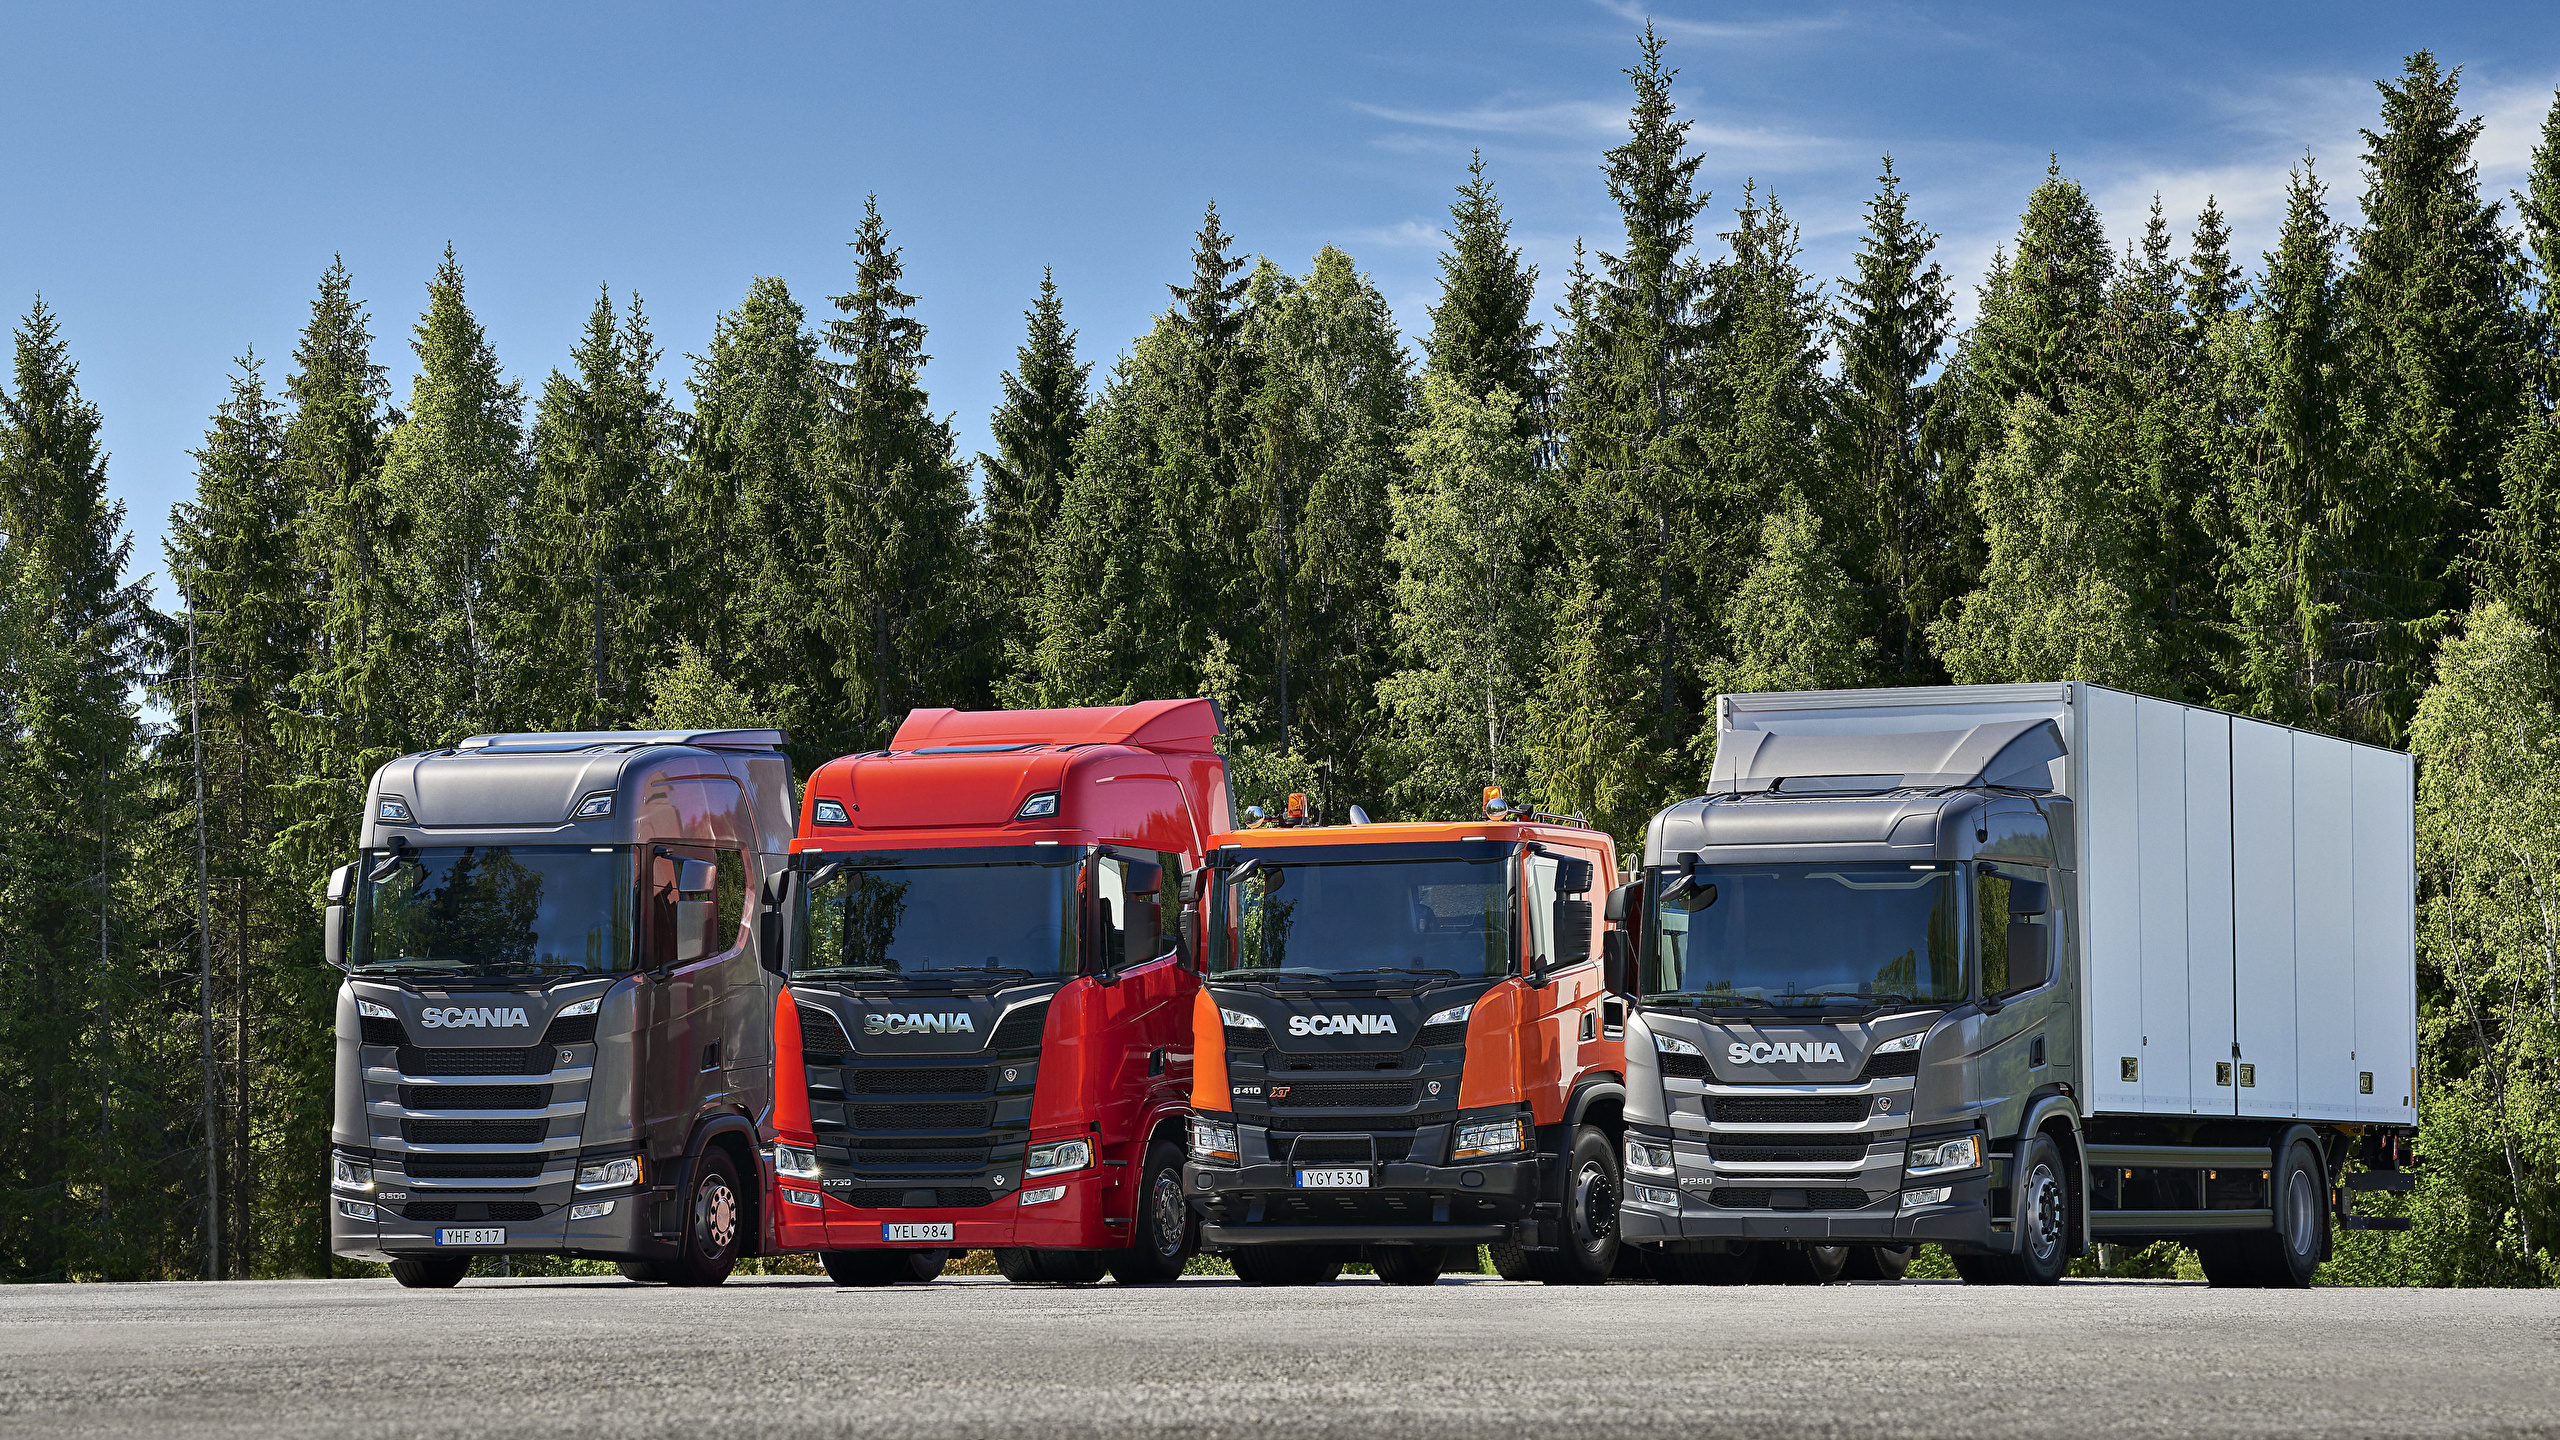 Wallpaper Lorry Scania Auto Front 2560x1440